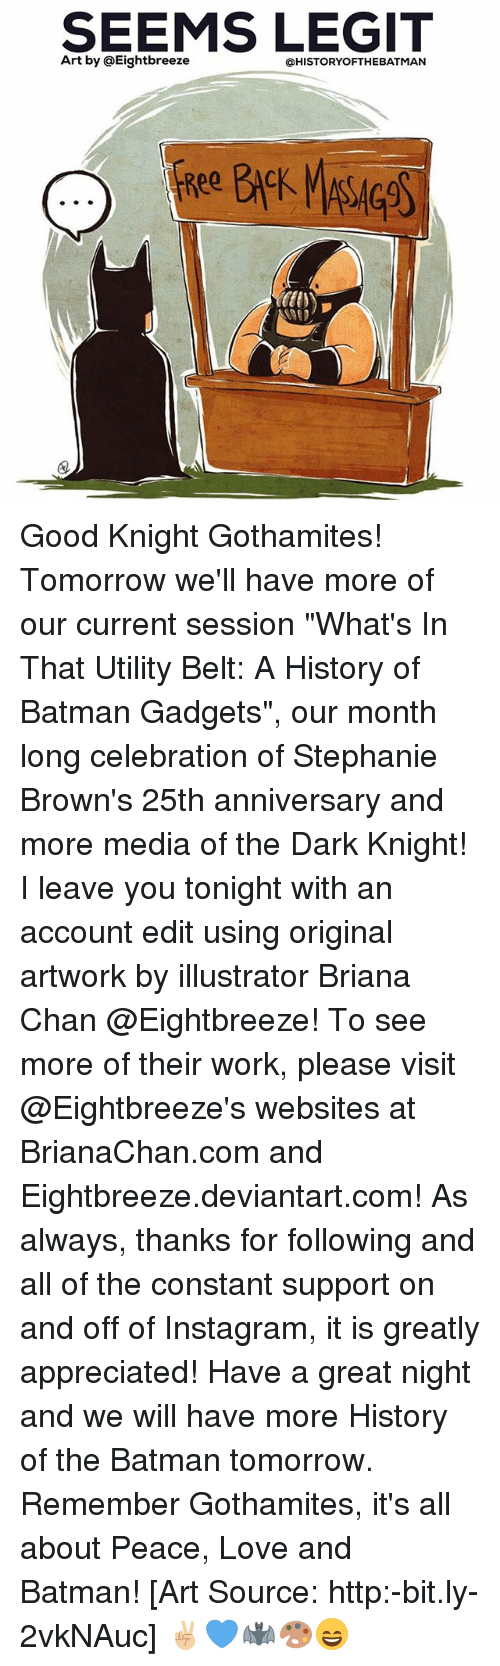 "Batman, Instagram, and Love: SEEMS LEGIT  Art by @Eightbreeze  @HISTORYOFTHEBATMAN Good Knight Gothamites! Tomorrow we'll have more of our current session ""What's In That Utility Belt: A History of Batman Gadgets"", our month long celebration of Stephanie Brown's 25th anniversary and more media of the Dark Knight! I leave you tonight with an account edit using original artwork by illustrator Briana Chan @Eightbreeze! To see more of their work, please visit @Eightbreeze's websites at BrianaChan.com and Eightbreeze.deviantart.com! As always, thanks for following and all of the constant support on and off of Instagram, it is greatly appreciated! Have a great night and we will have more History of the Batman tomorrow. Remember Gothamites, it's all about Peace, Love and Batman! [Art Source: http:-bit.ly-2vkNAuc] ✌🏼💙🦇🎨😄"